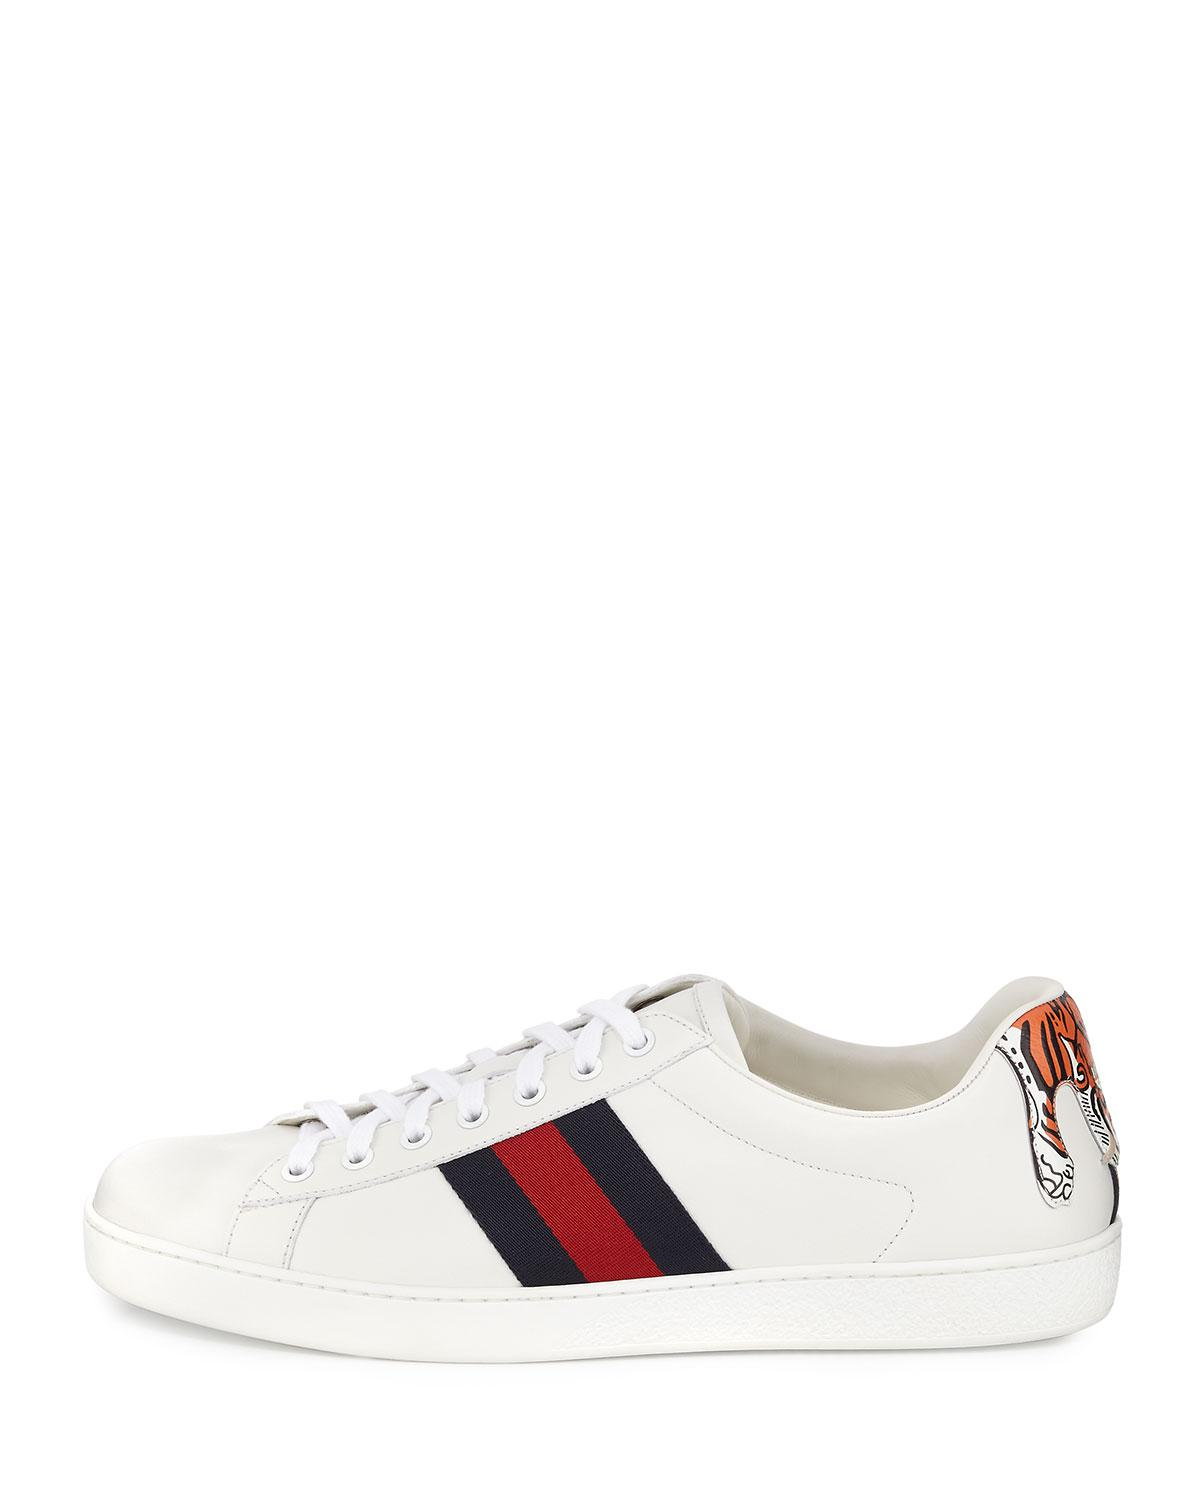 48c18c949 Gucci New Ace Hanging Tiger Leather Low-top Sneaker in White - Lyst